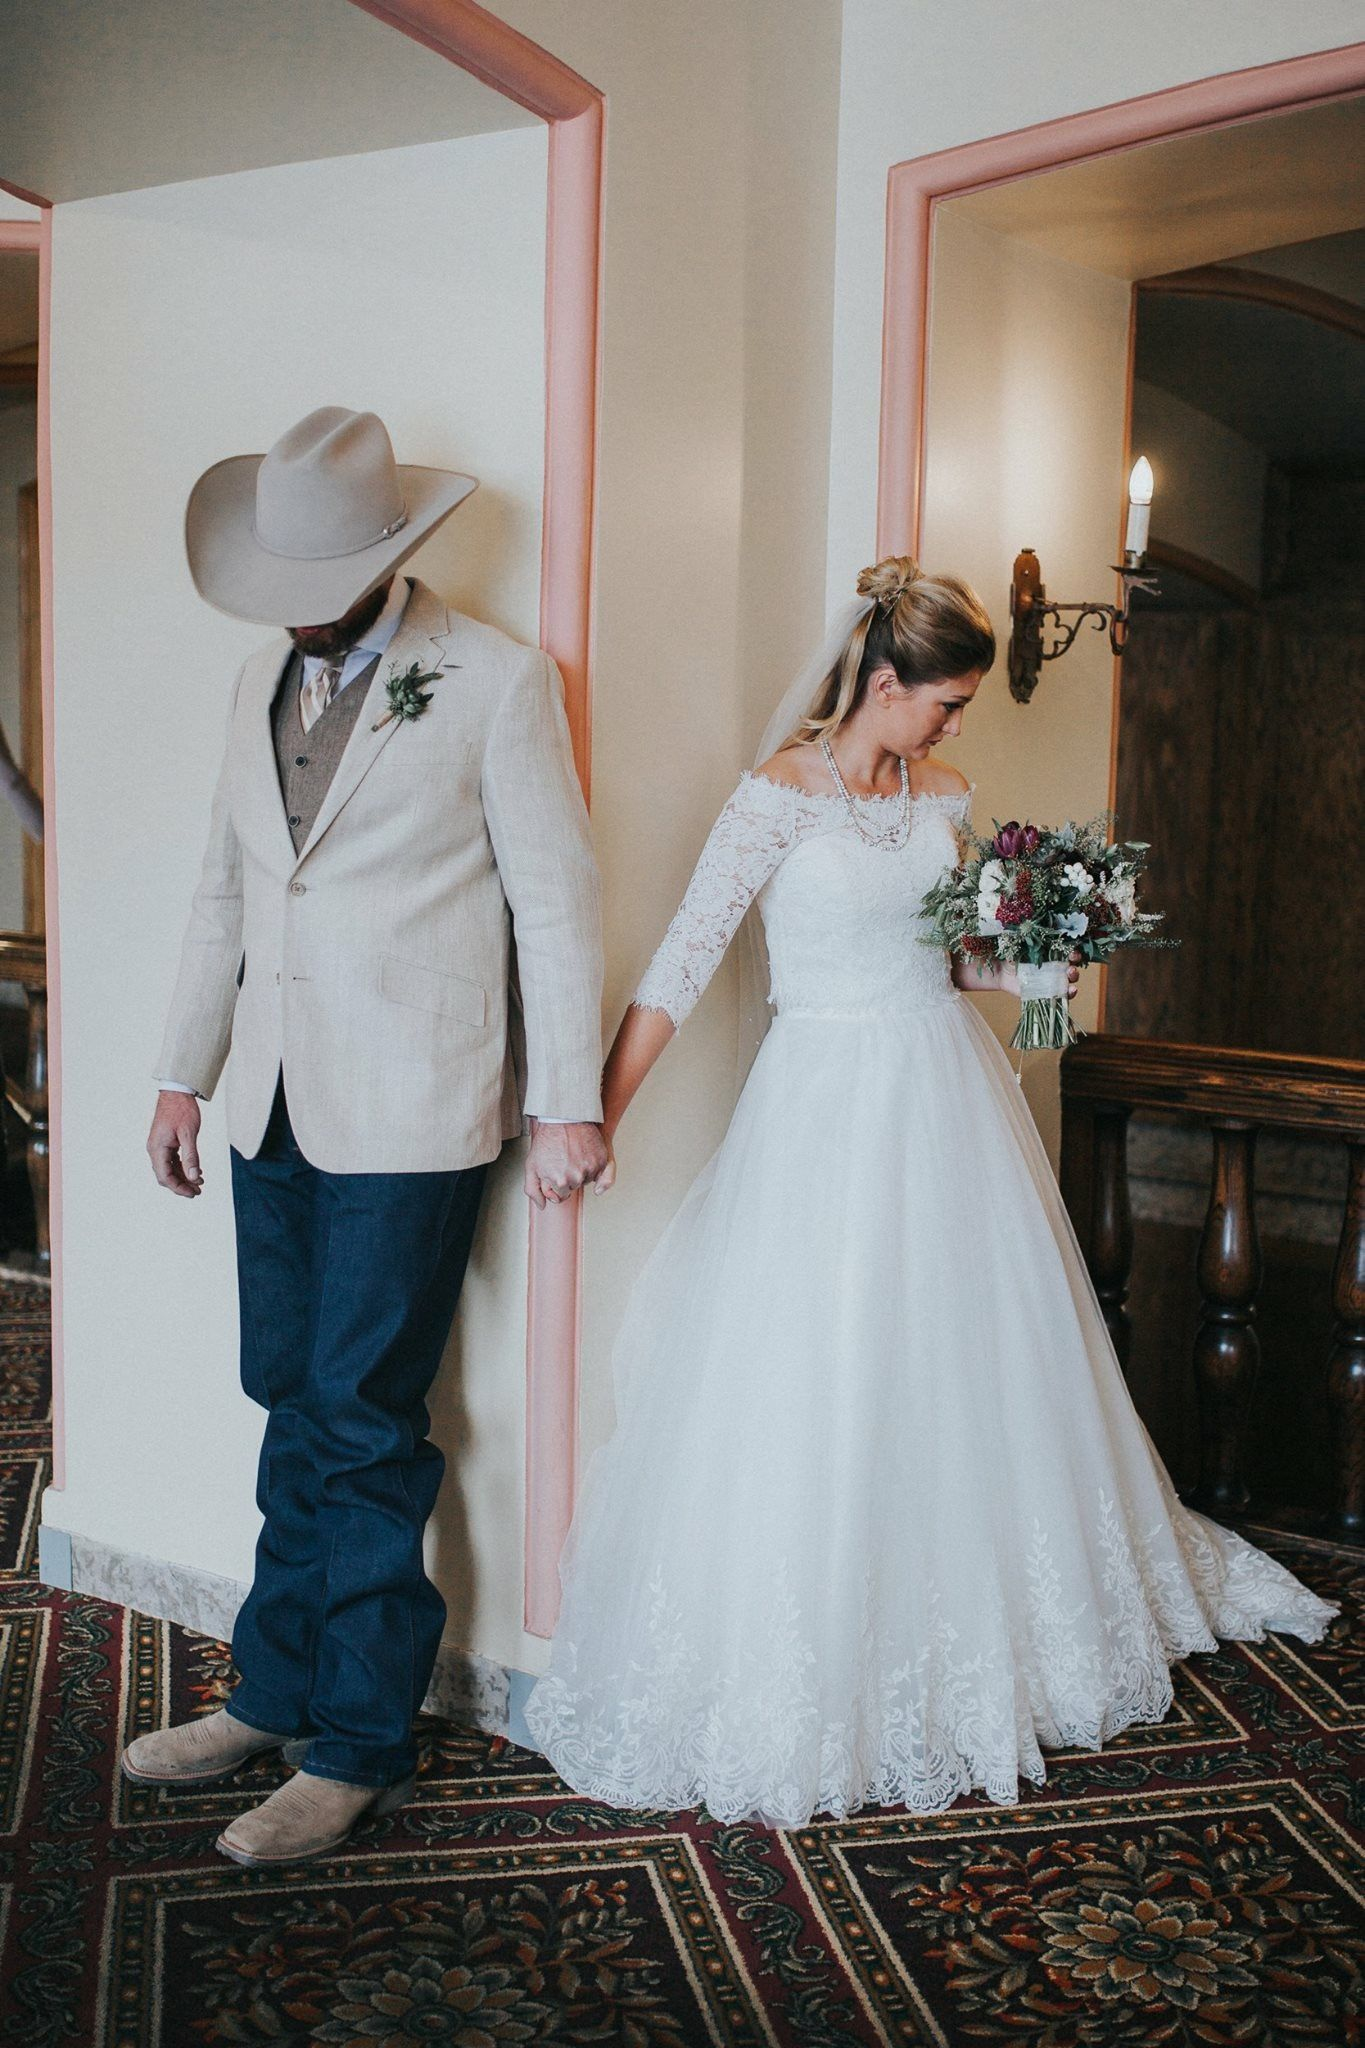 Wedding Prayer Bride and Groom - Cowboy Wedding | Winter Destination ...